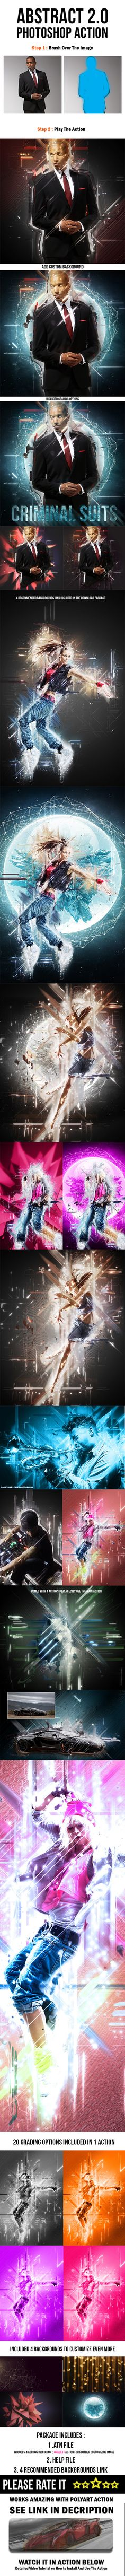 Abstract 2.0 Photoshop Action - Photo Effects Actions